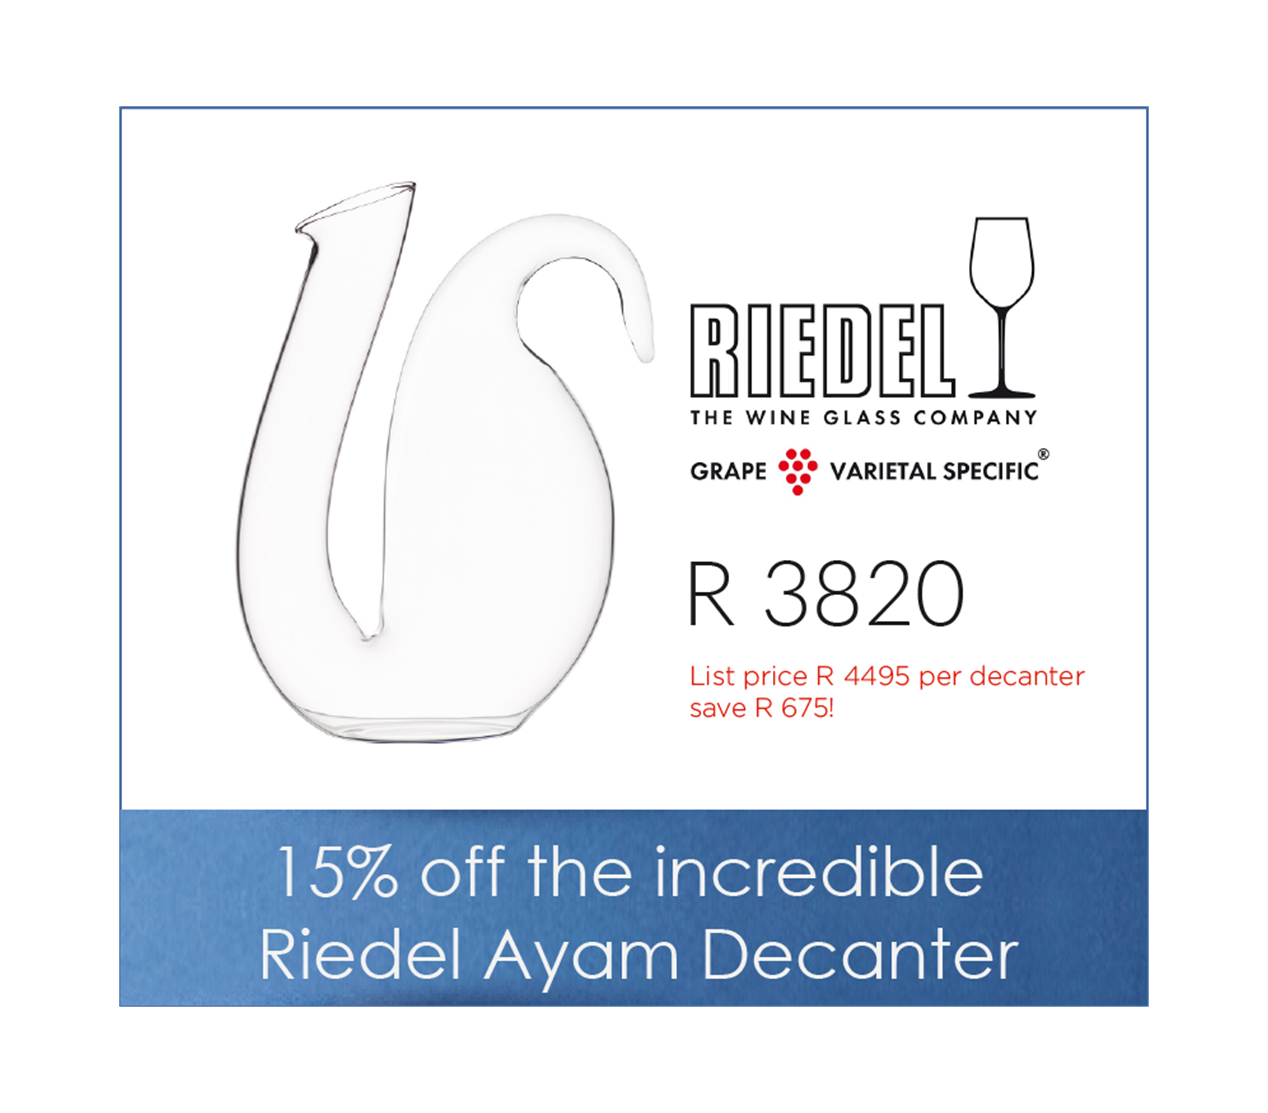 Riedel Ayam Decanter promo